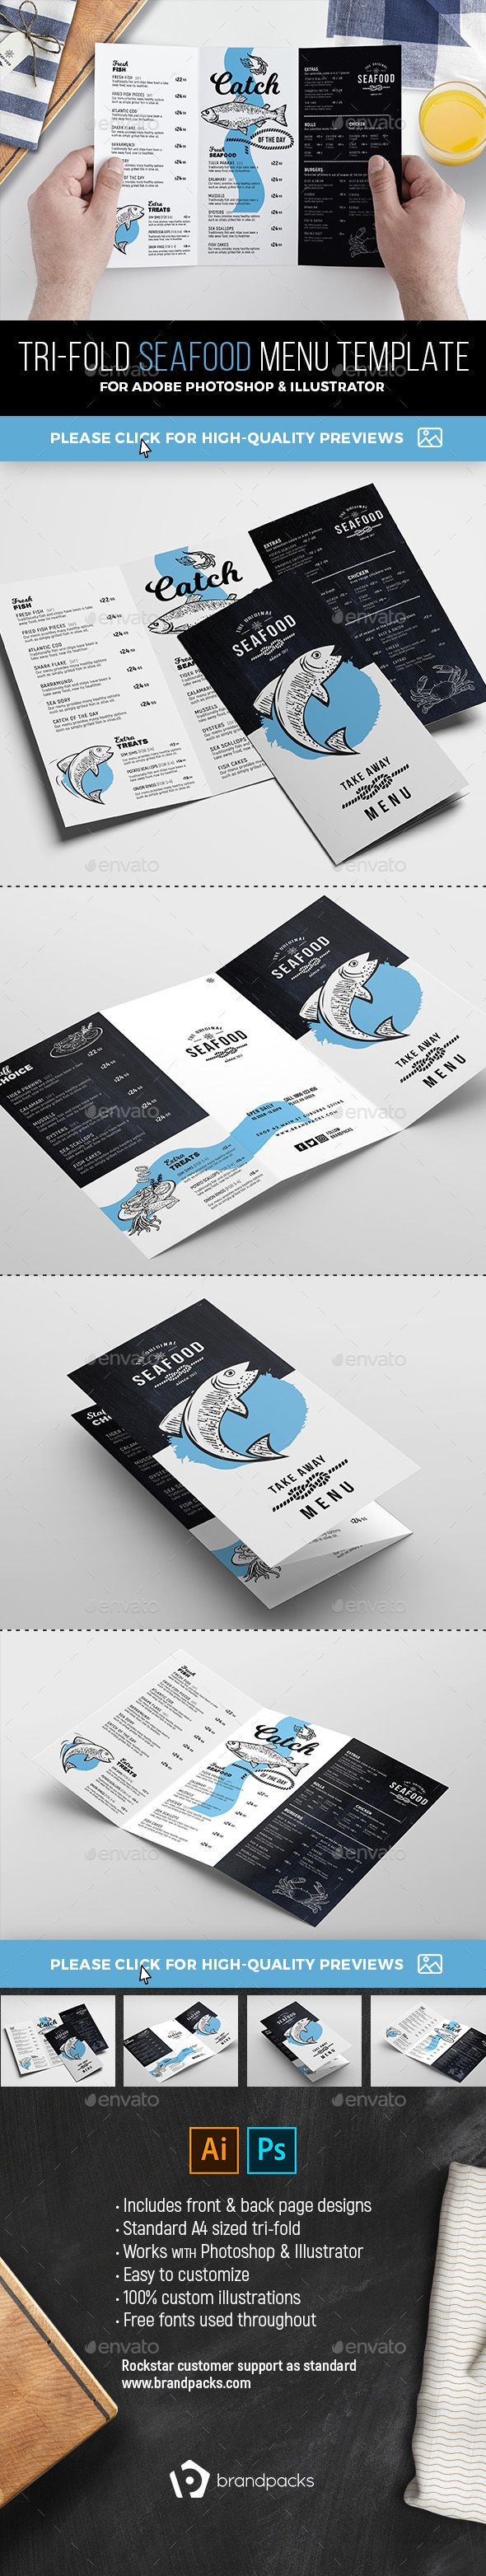 TriFold Seafood Menu Template — Photoshop PSD #seafood restaurant #menu template • Available here ➝ https://graphicriver.net/item/trifold-seafood-menu-template/21049656?ref=pxcr